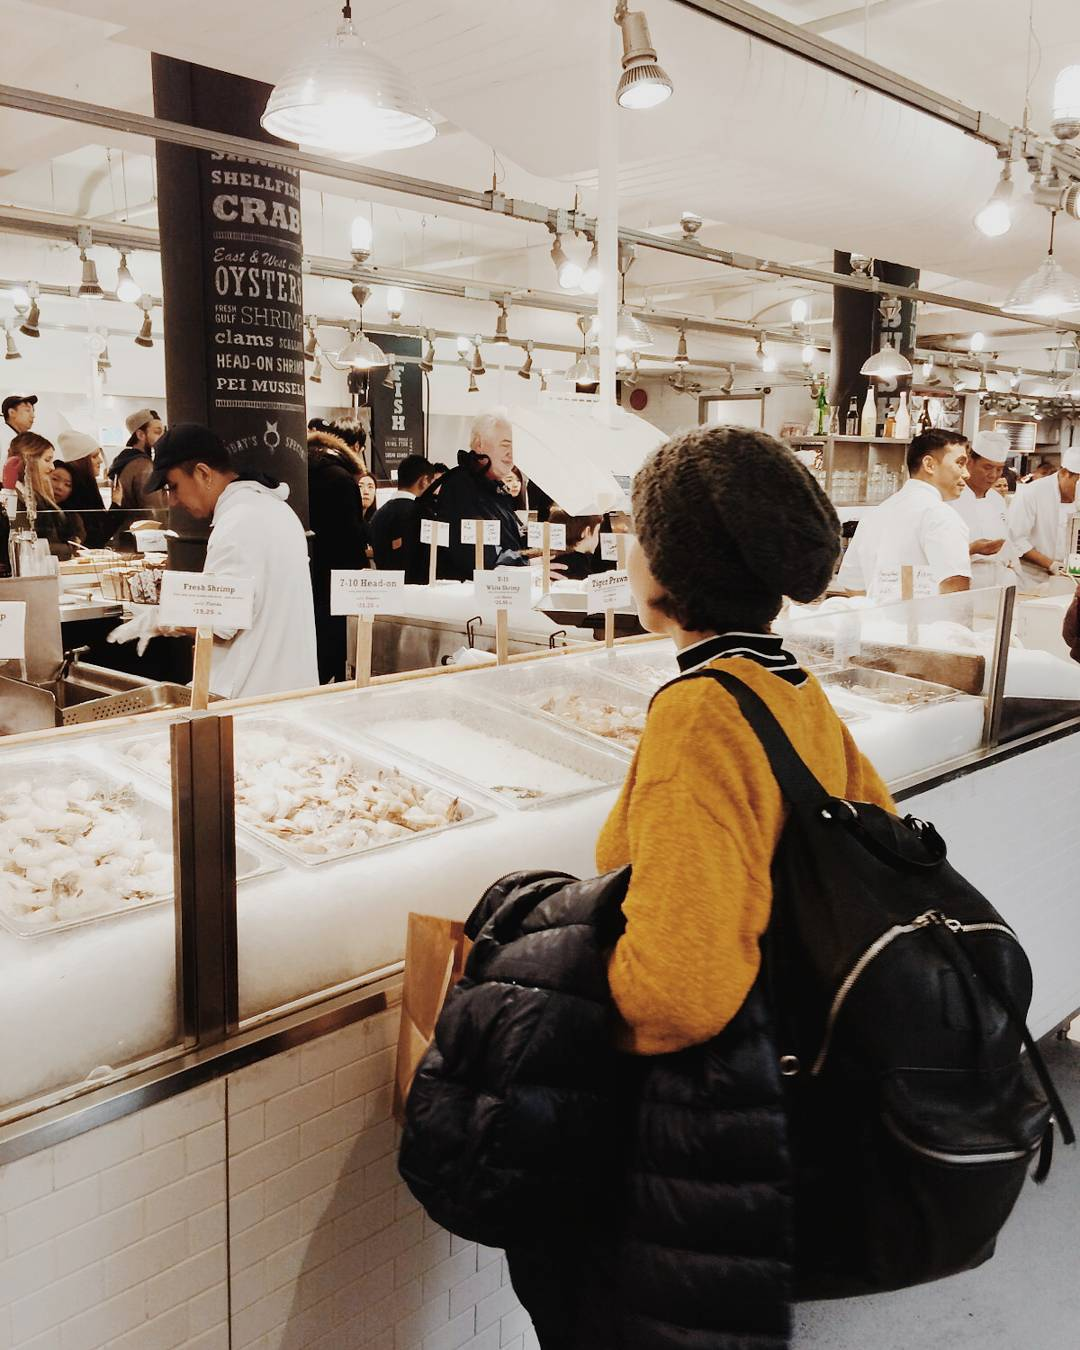 NY with MAMBO . Chelsea Market  #ny #newyork #backpack #welltravelled #goexplore